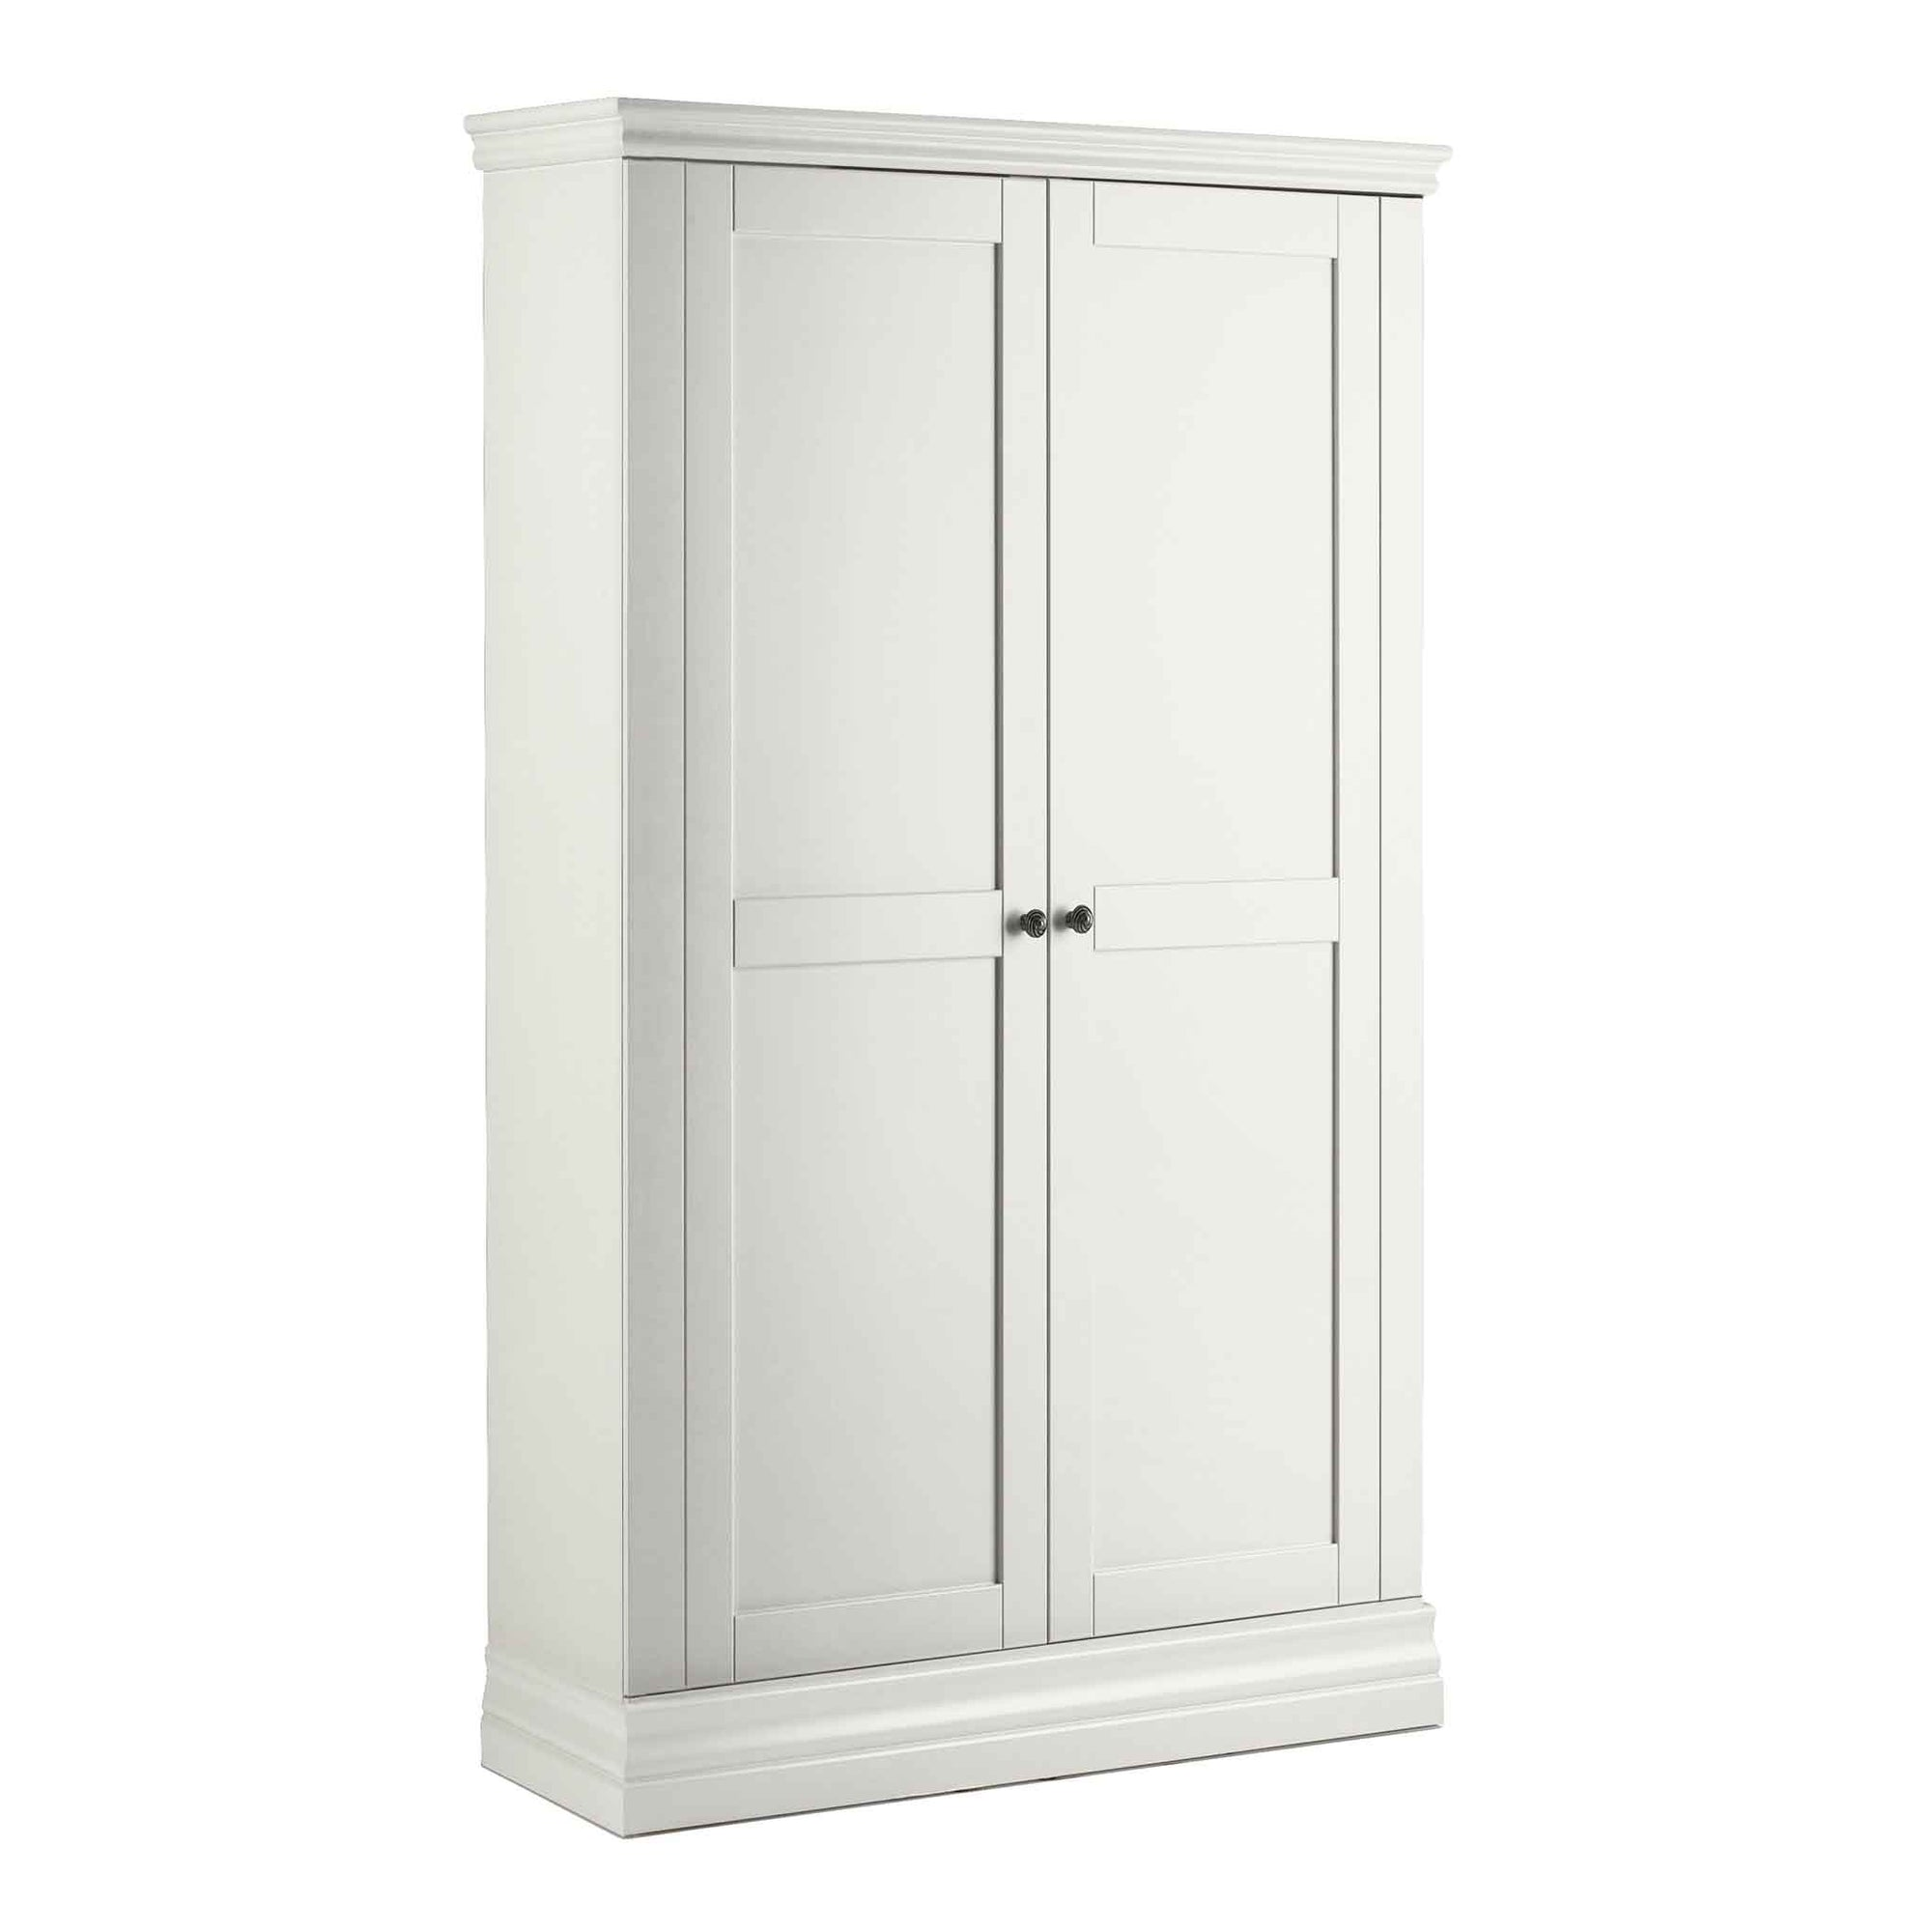 Melrose White Narrow Double Wardrobe from Roseland Furniture